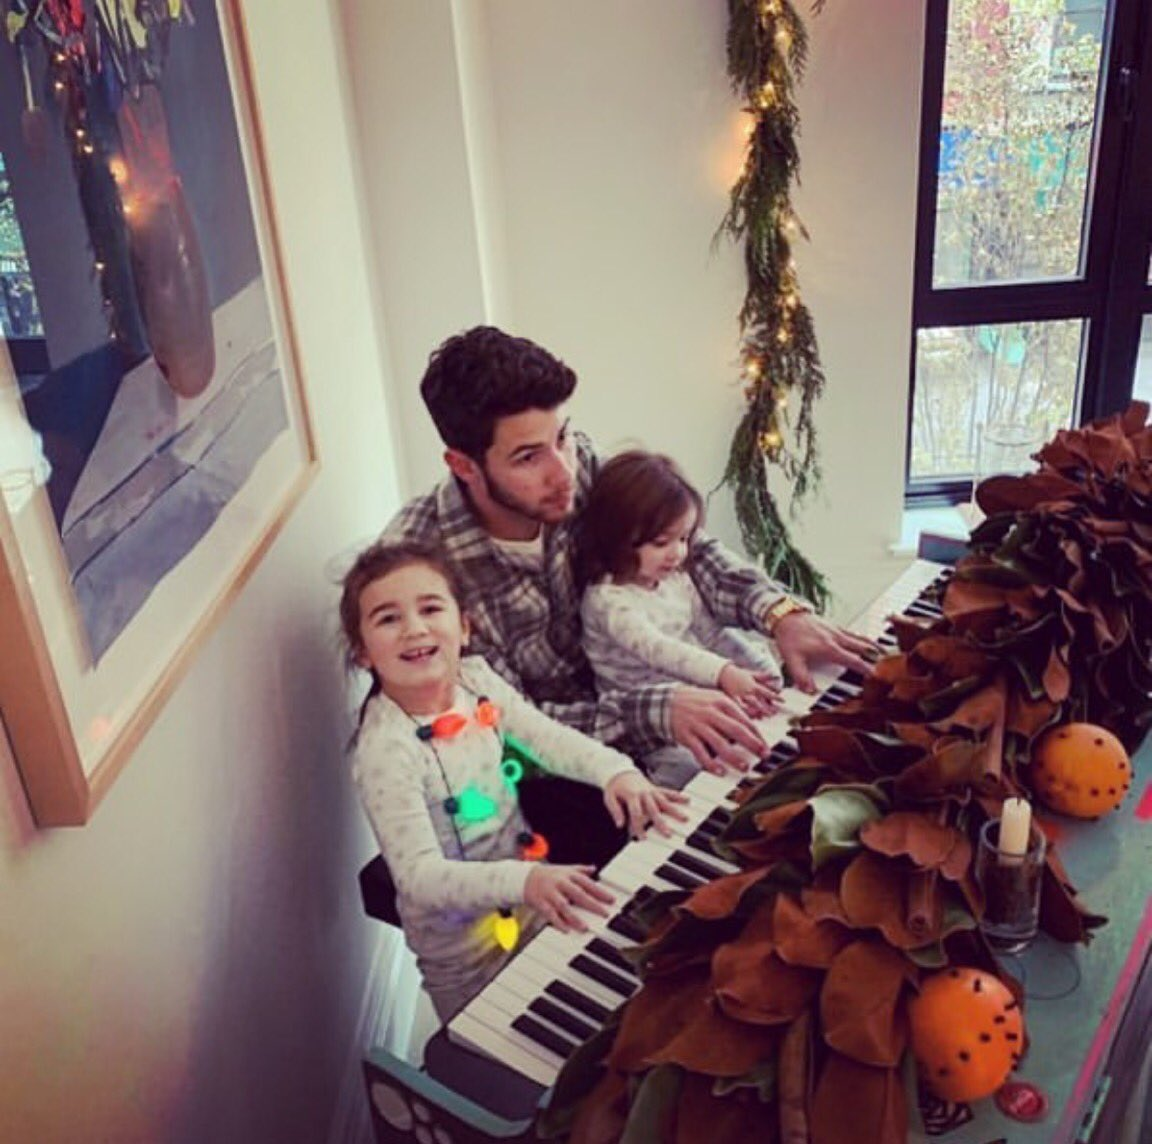 My beautiful nieces teaching me everything I know on the keys. 🎄😍